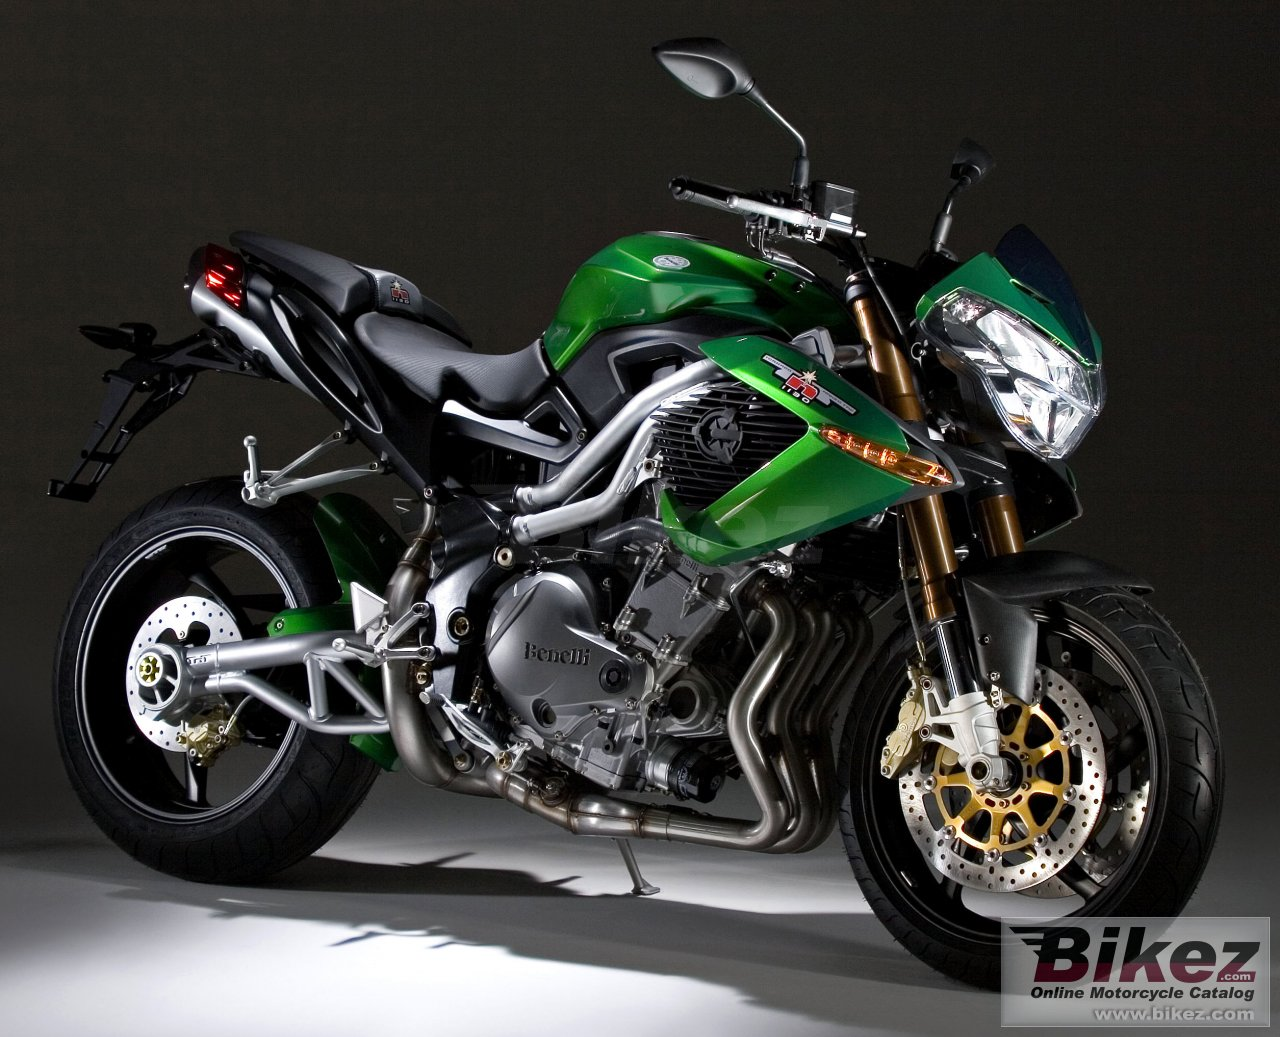 Big Benelli tnt 1130 picture and wallpaper from Bikez.com